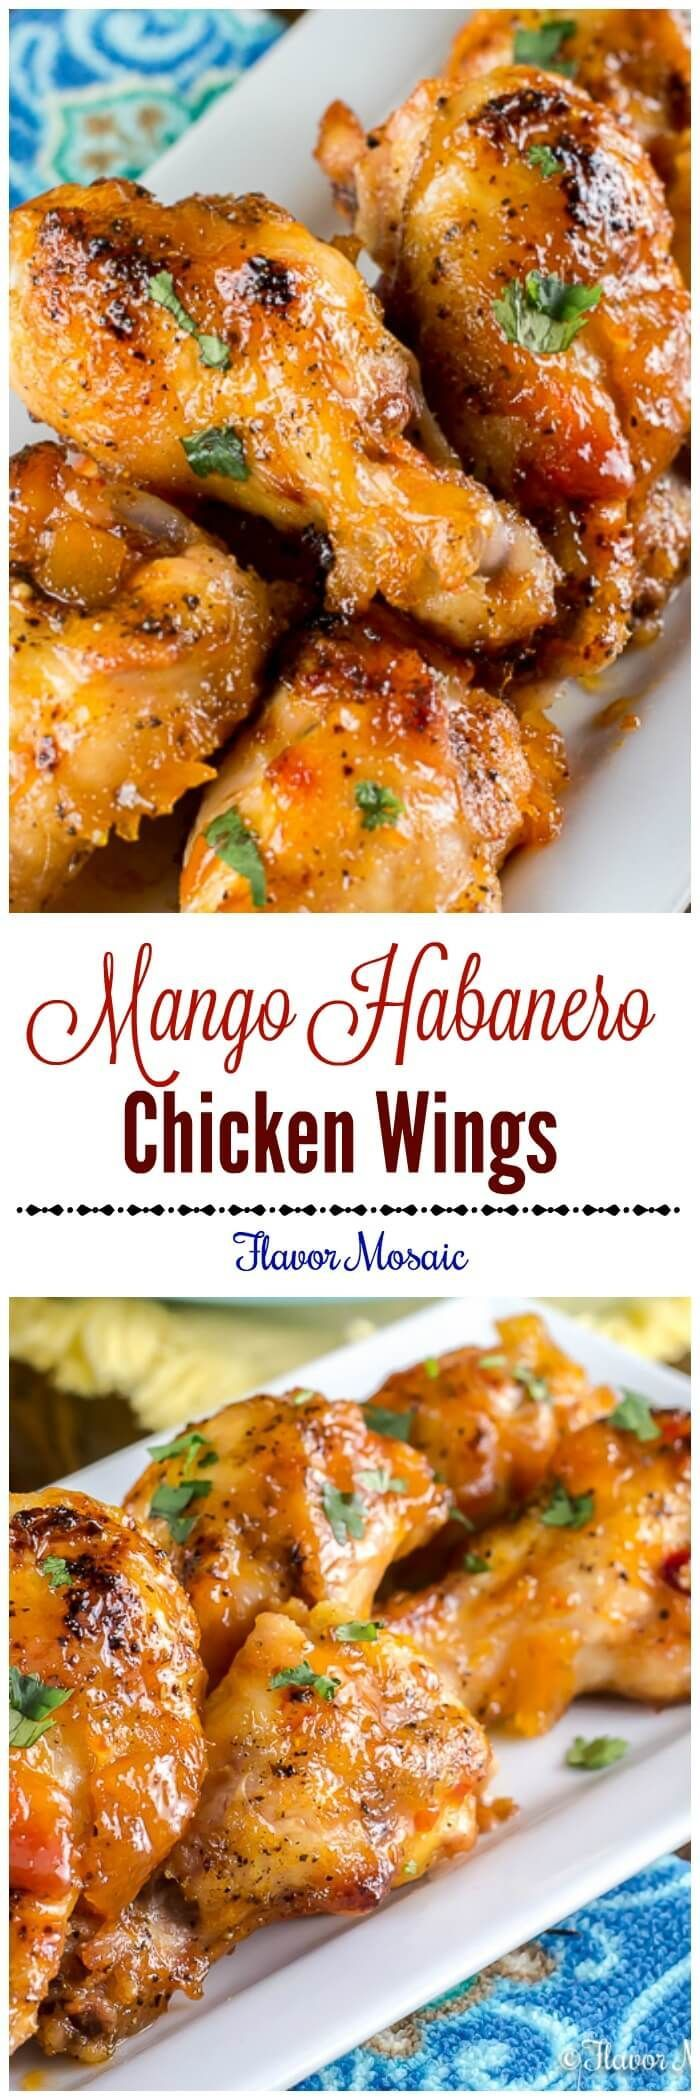 nice Mango Habanero Wings are sweet and spicy chicken wings with a Mango Habanero gla...by http://dezdemooncooking.gdn